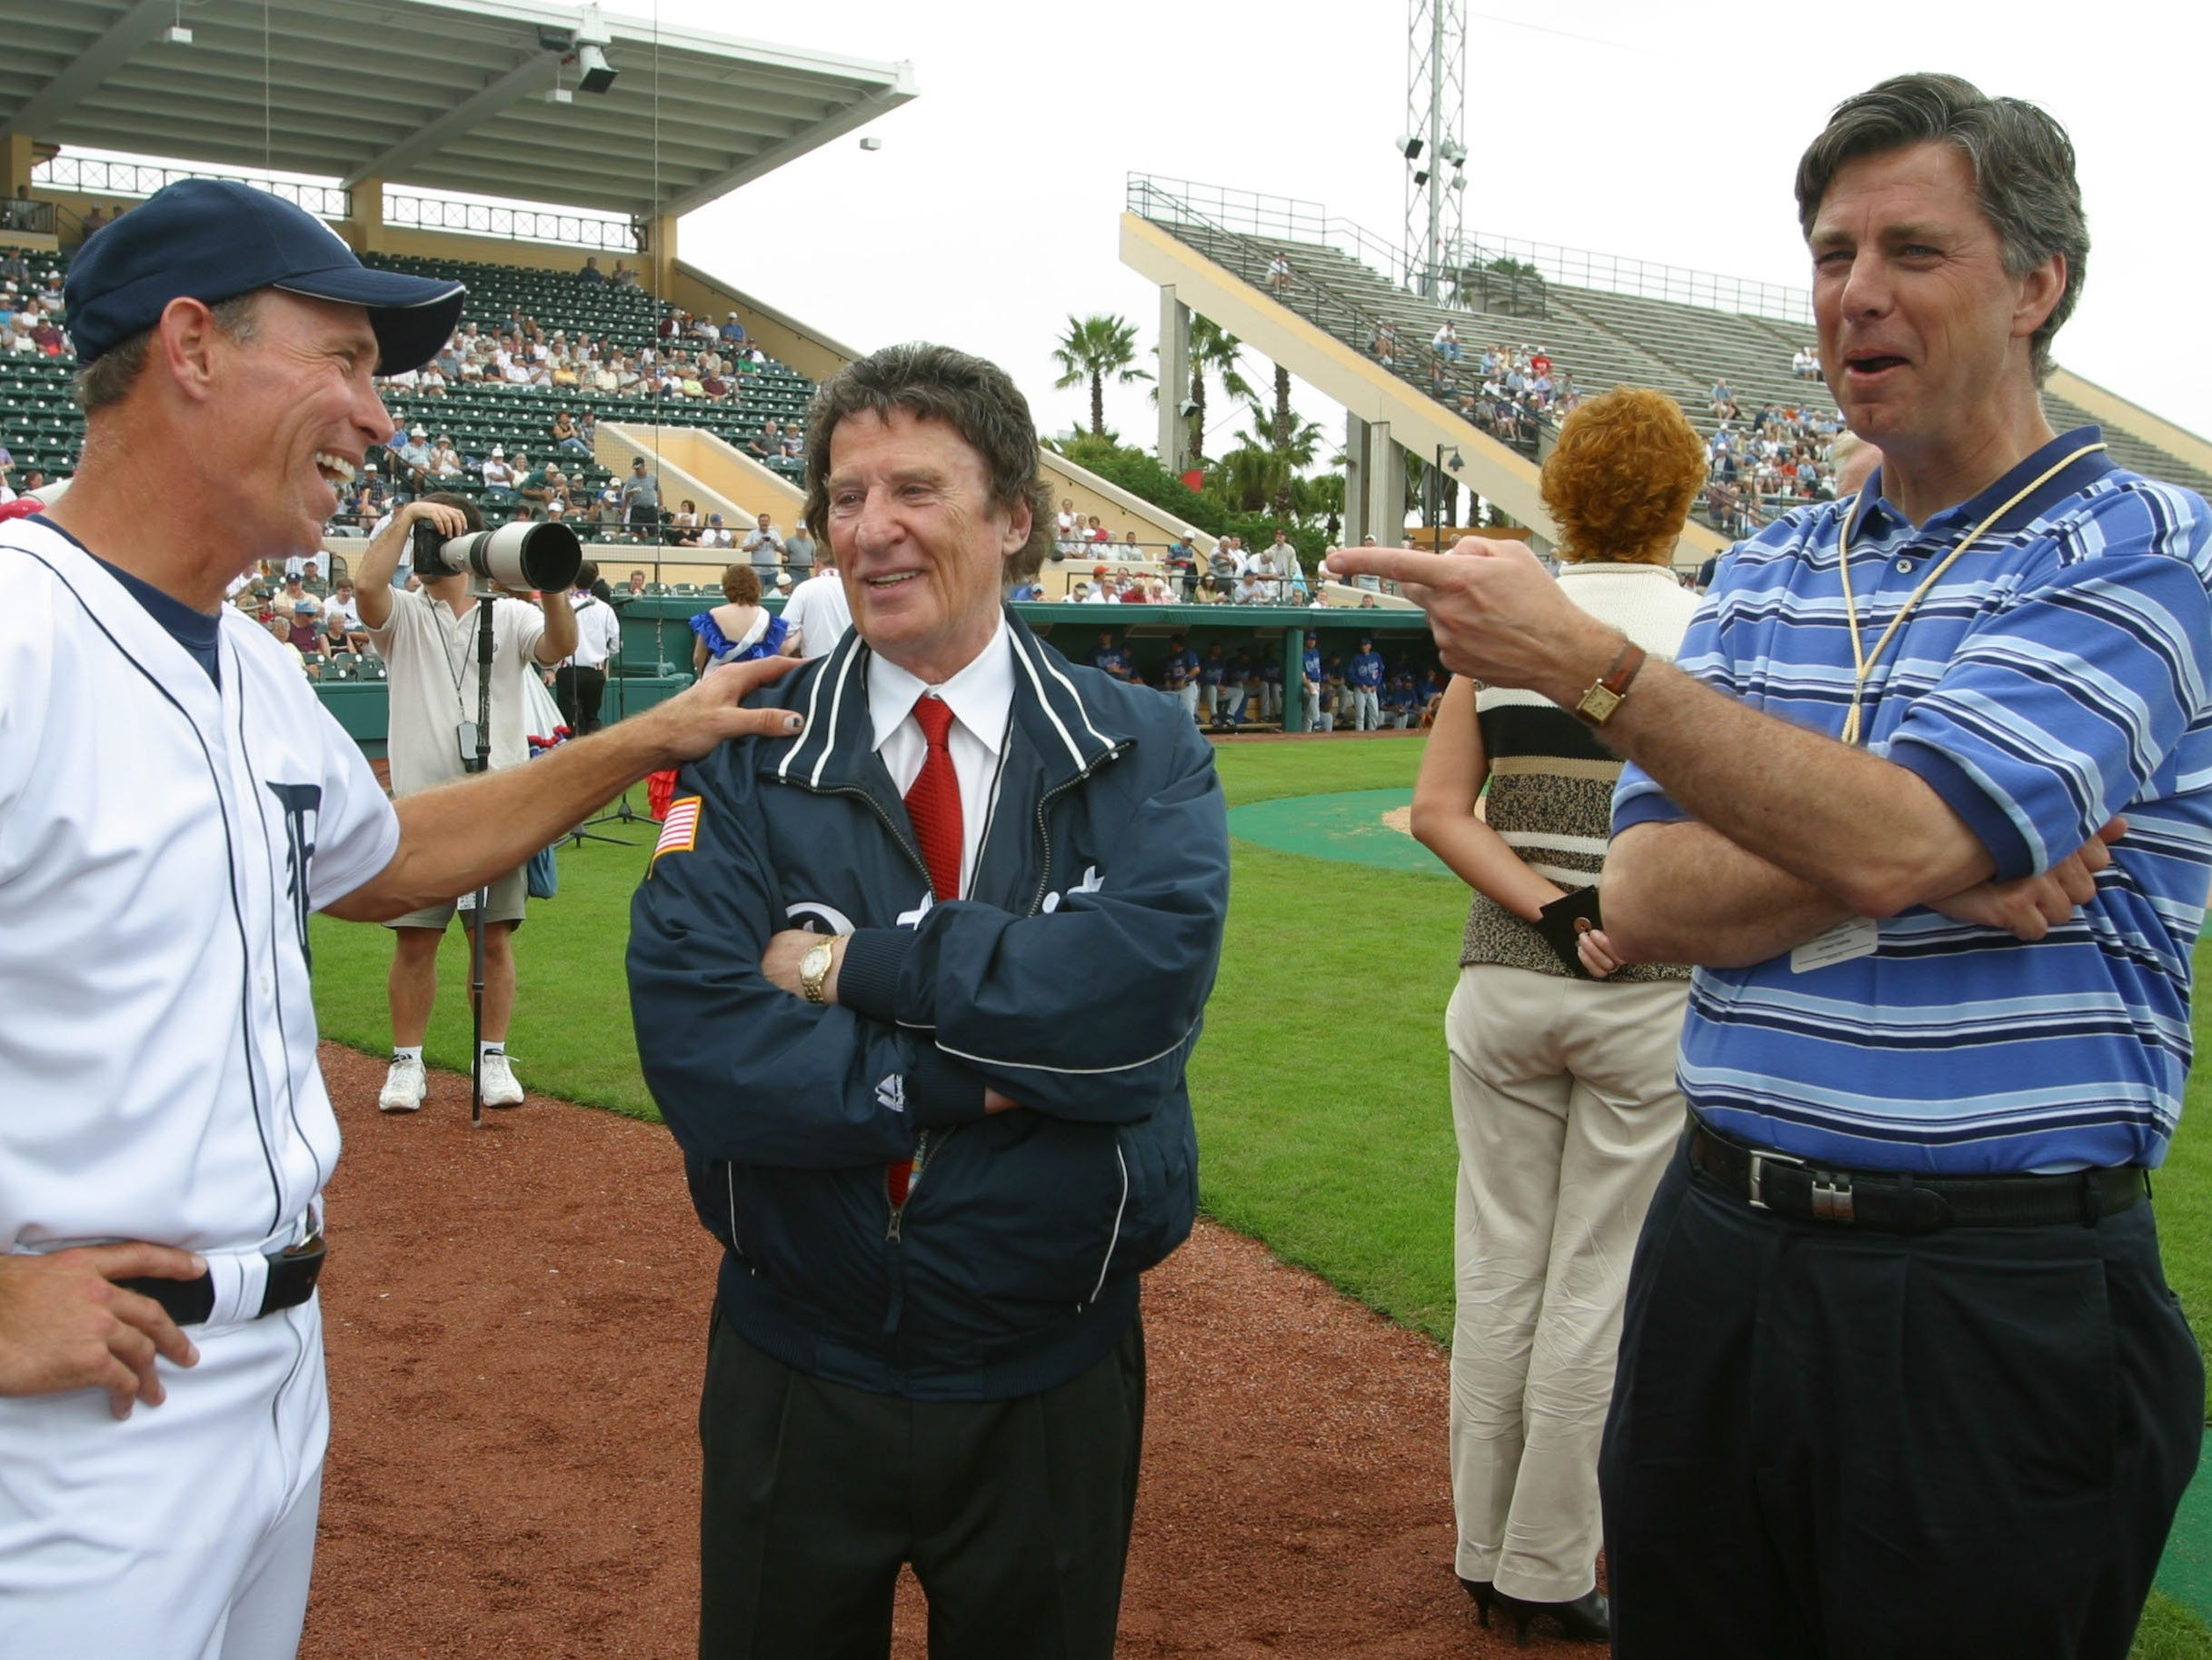 Detroit Tigers owner Mike Ilitch, center, chats with  Tigers  manager Alan Trammell , left, and Tigers President, CEO, and GM David Dombrowski, right,  prior to the Tigers &  LA Dodgers game at Jocker Marchant Stadium in Lakleand, Florida on Friday., February 28, 2003.